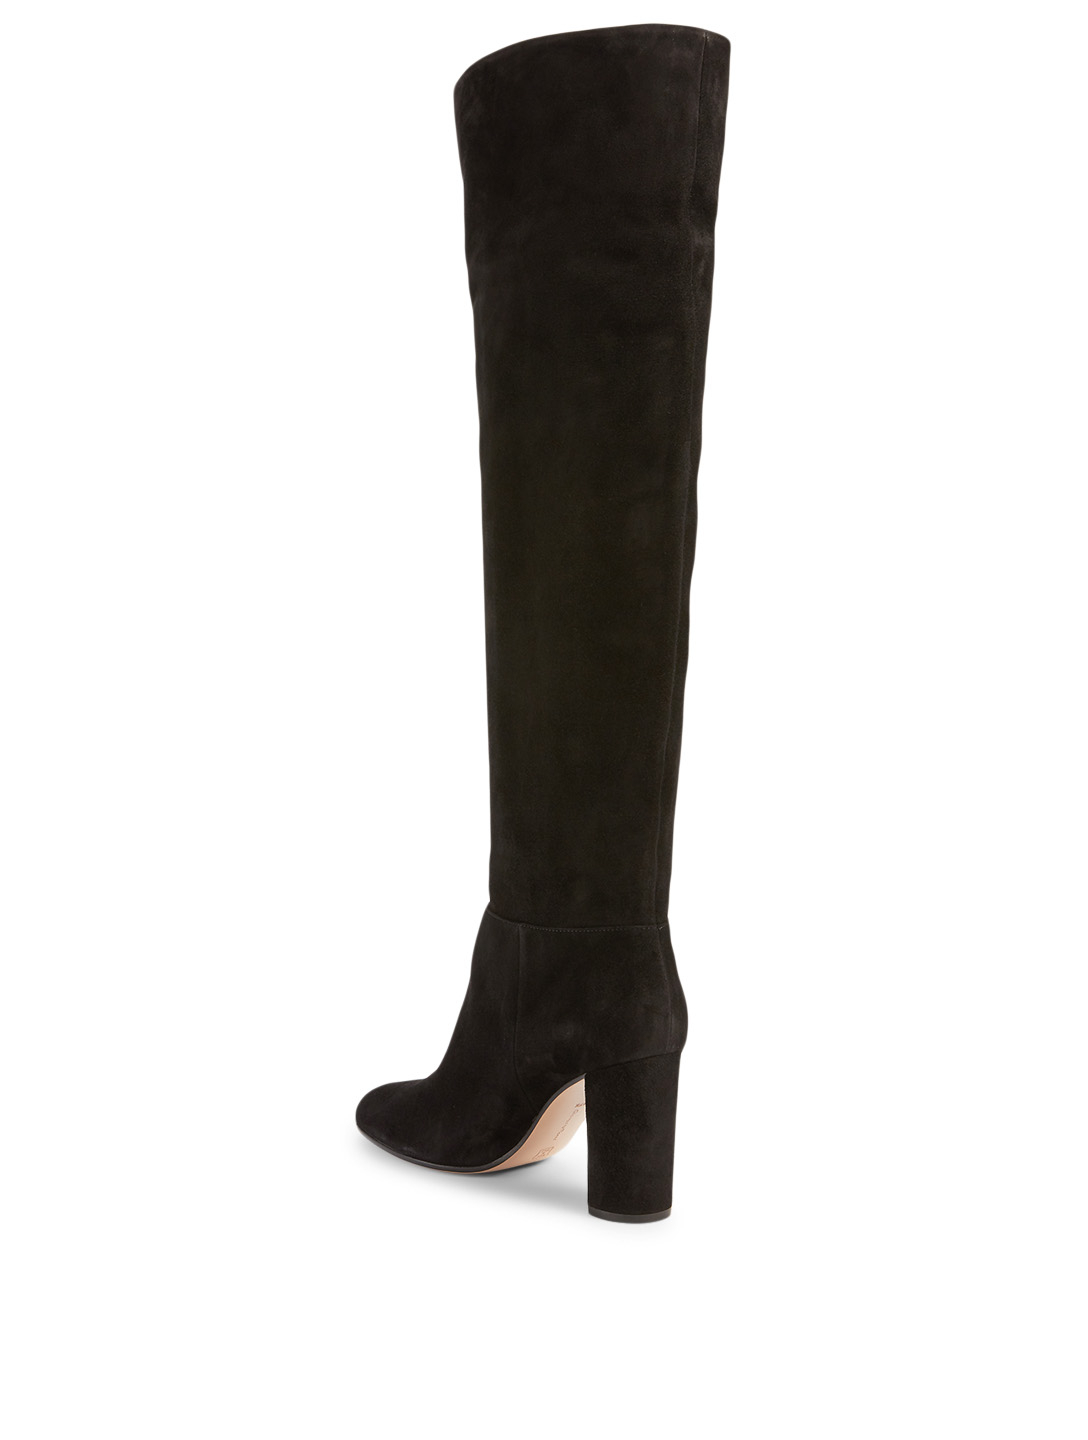 GIANVITO ROSSI Melissa Suede Heeled Knee-High Boots Women's Black